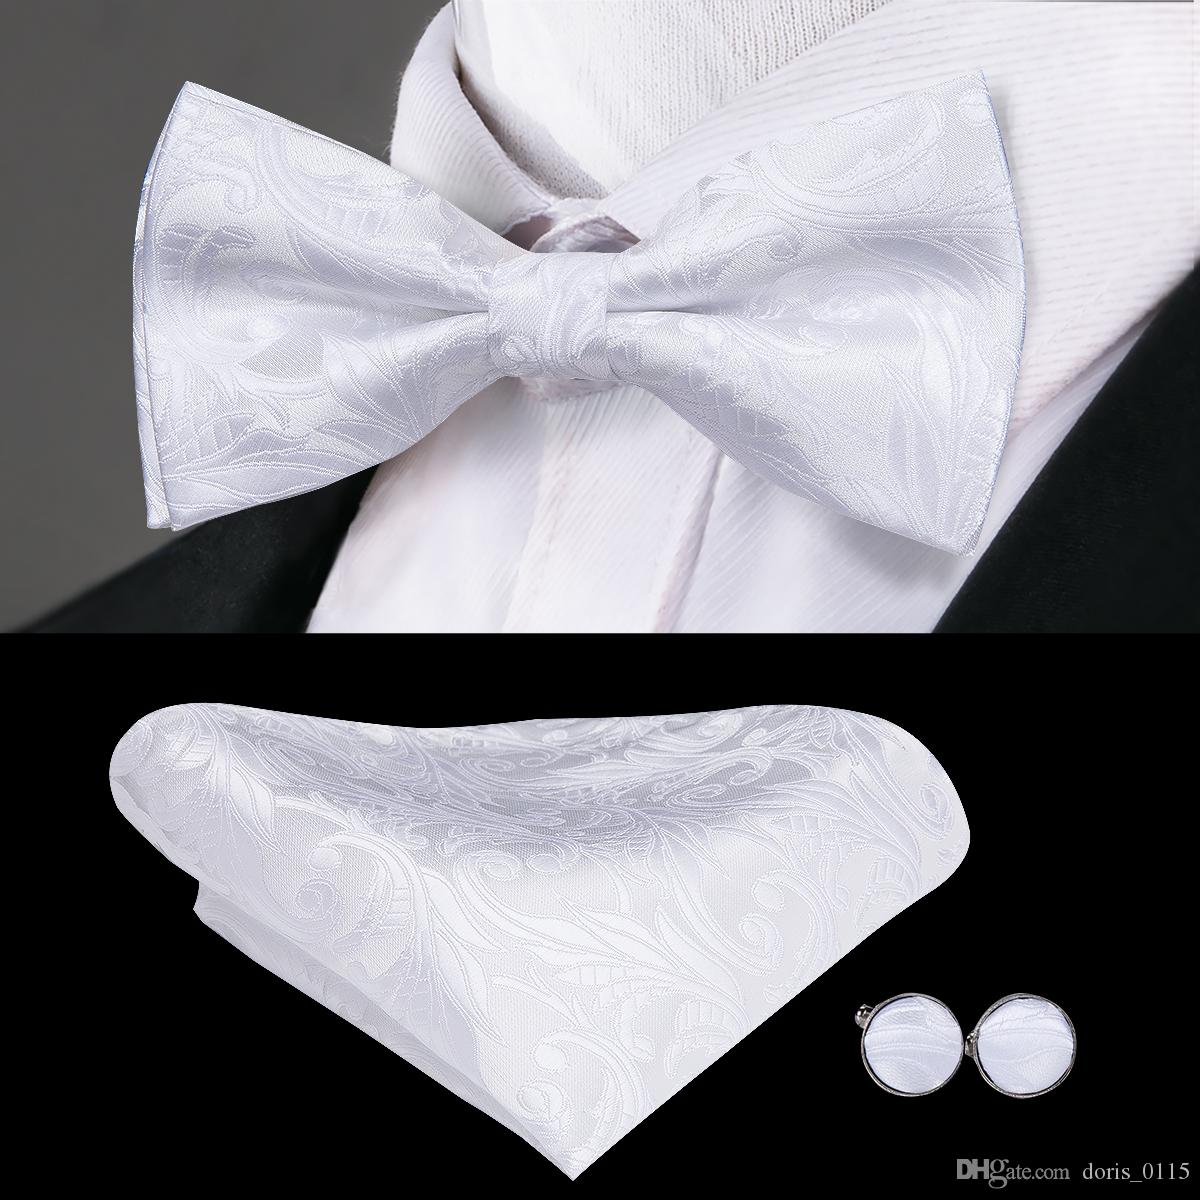 Hi-Tie Fashion Bowties Men White Floral Male Marriage Butterfly Wedding Bow ties With Handkerchief Cufflinks Freeing Shipping LH-790